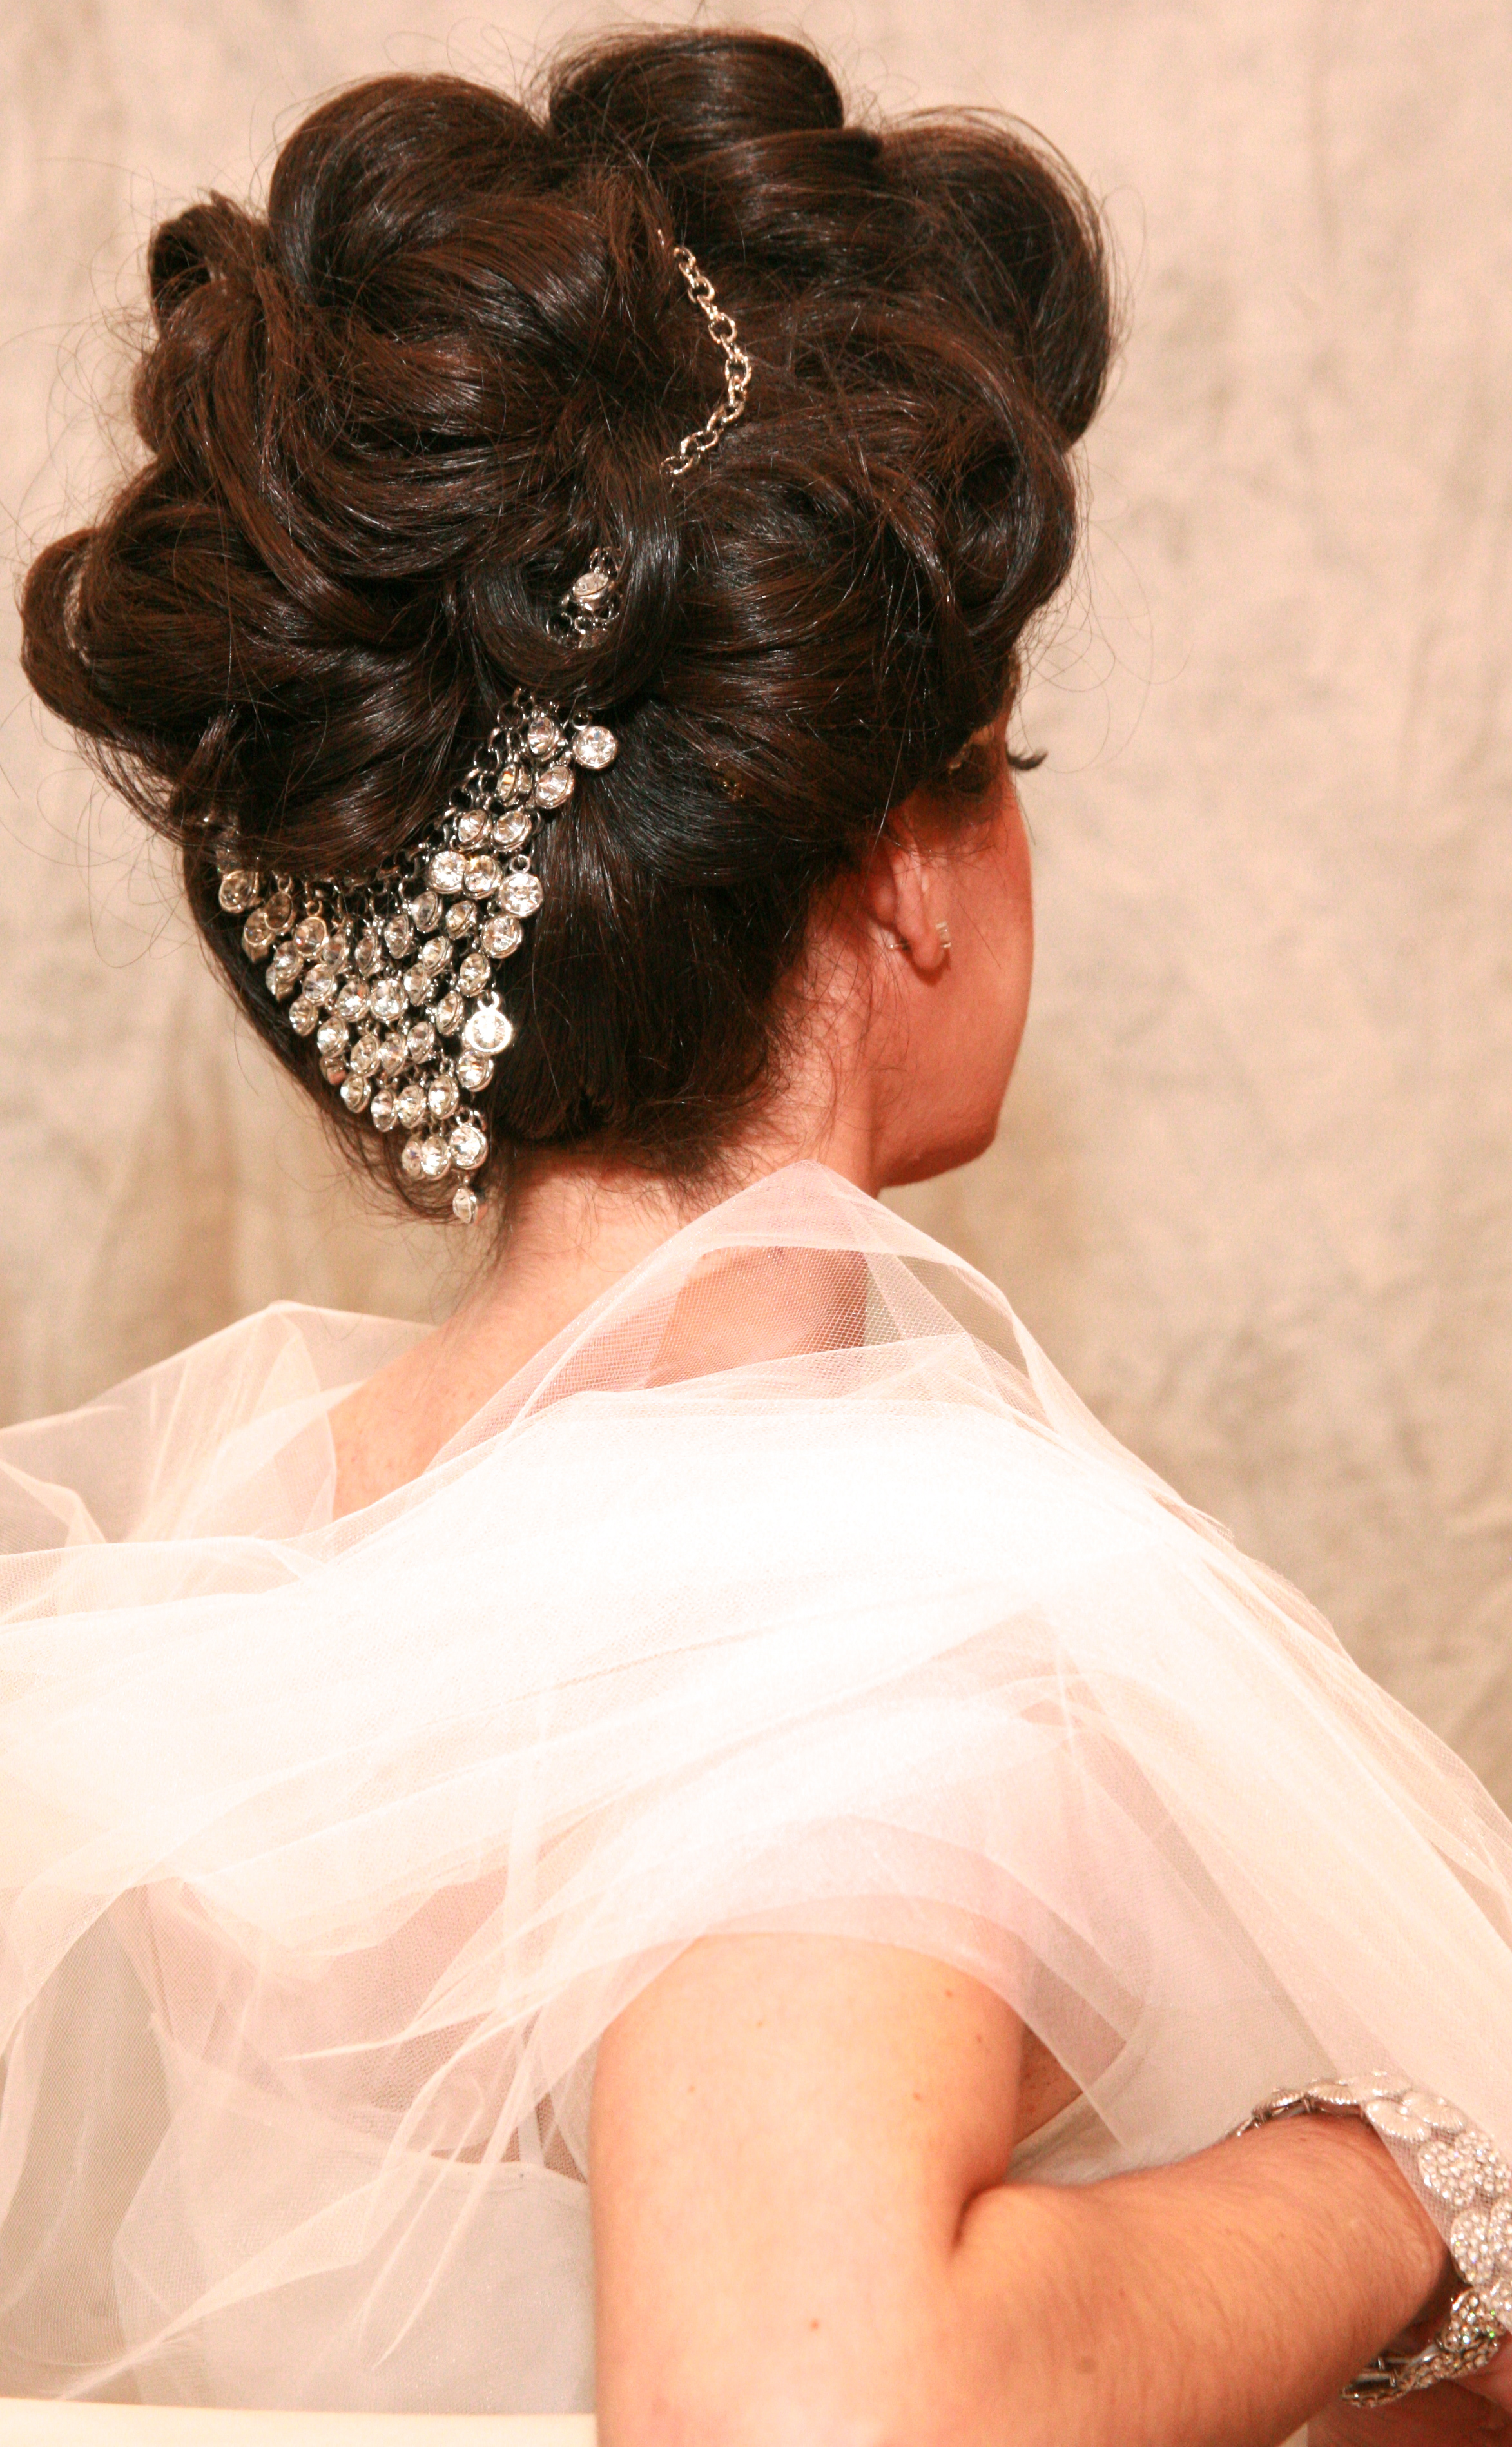 Long Island Bridal up-do